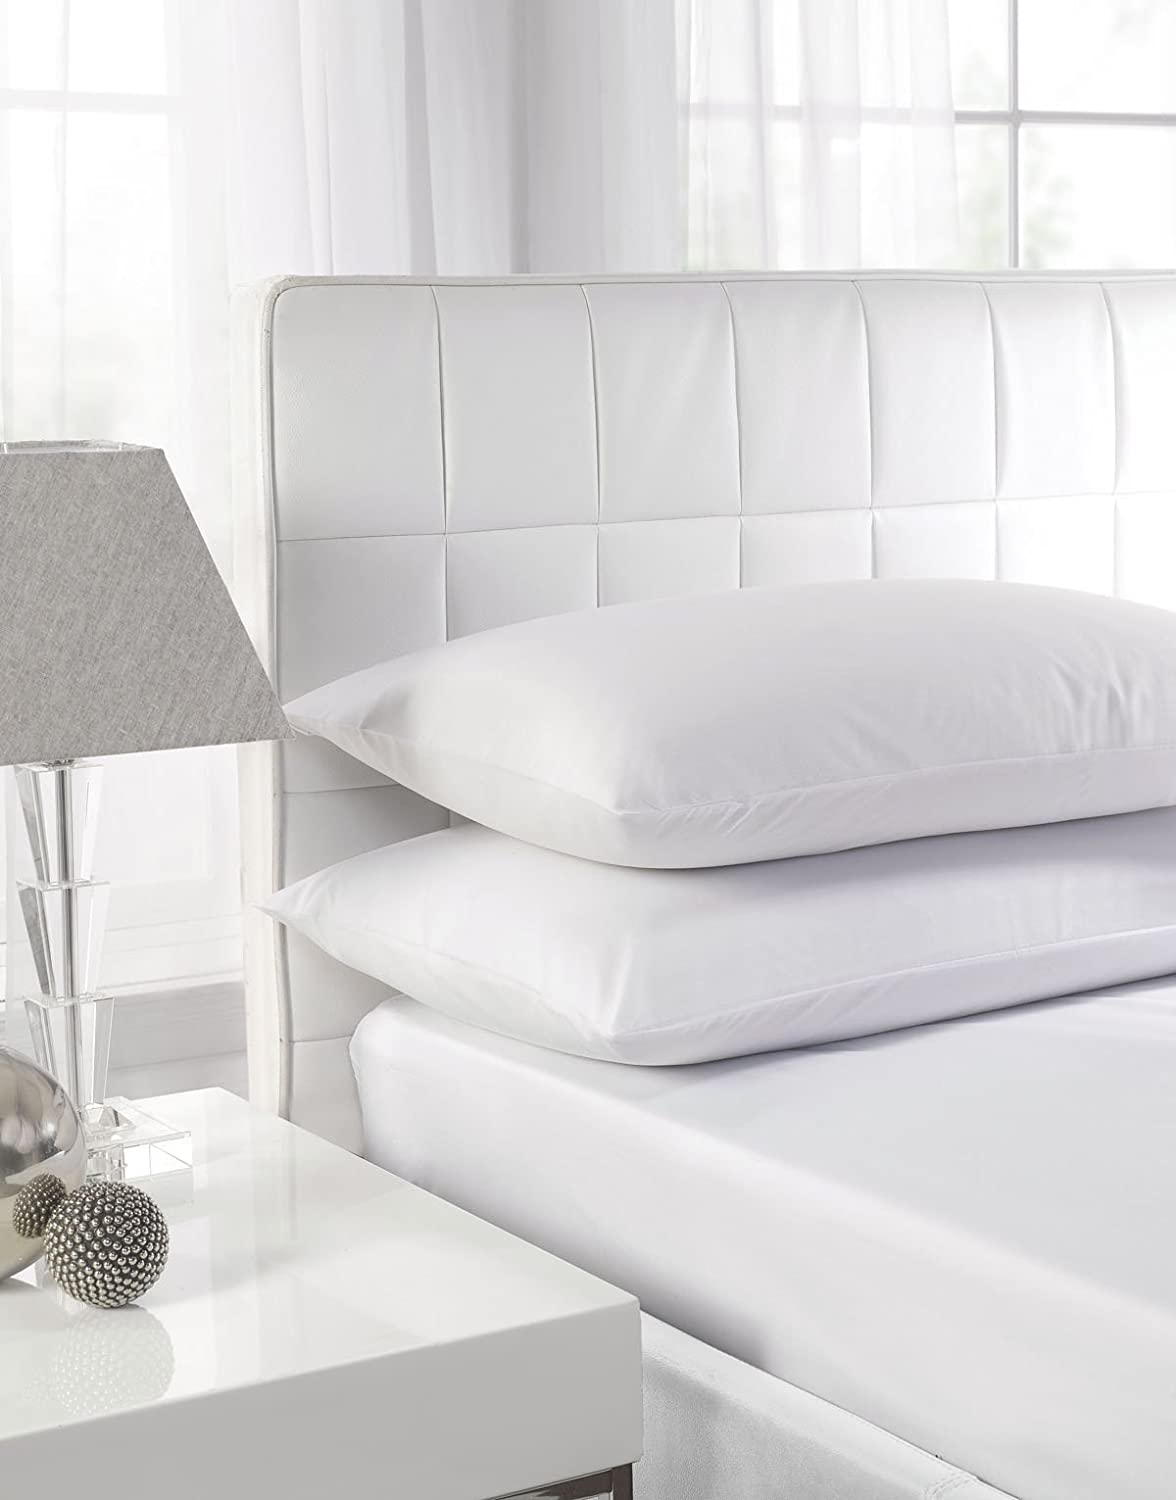 Easy Care Polycotton White Housewife (Standard) Pillowcase Pair by Textile Direct Textiles Direct